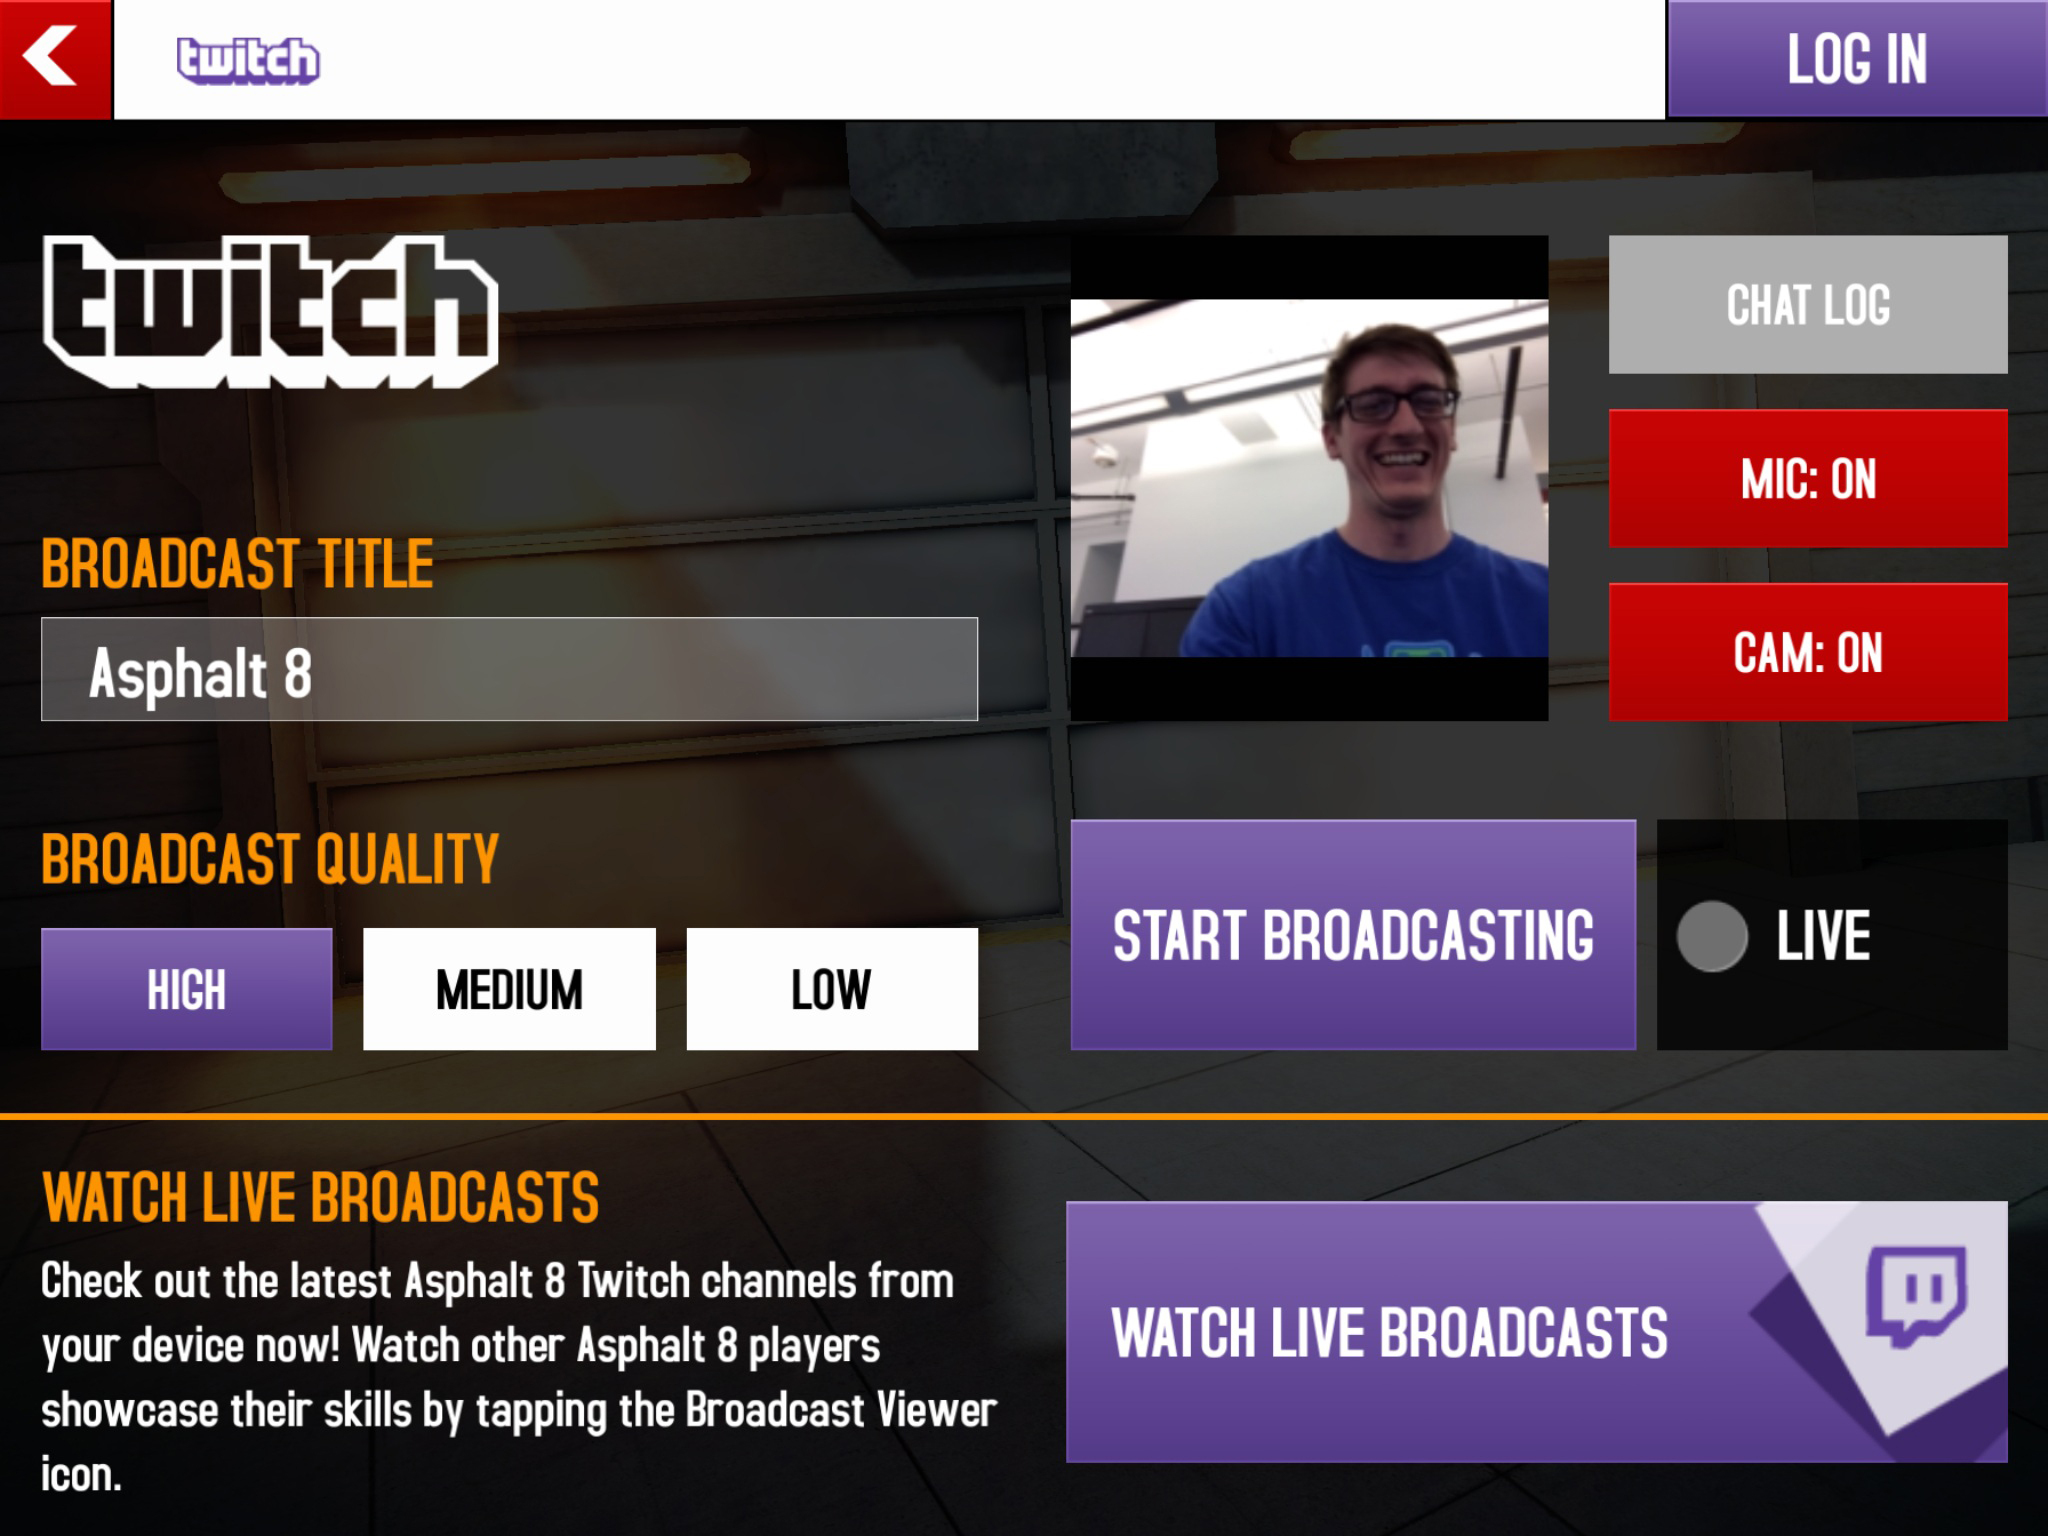 Using the Twitch Mobile SDK, Asphalt 8: Airborne is the first mobile game to have built-in streaming functionality. This image shows feature options and how to log in to Twitch to begin live broadcasting. (Photo: Business Wire)